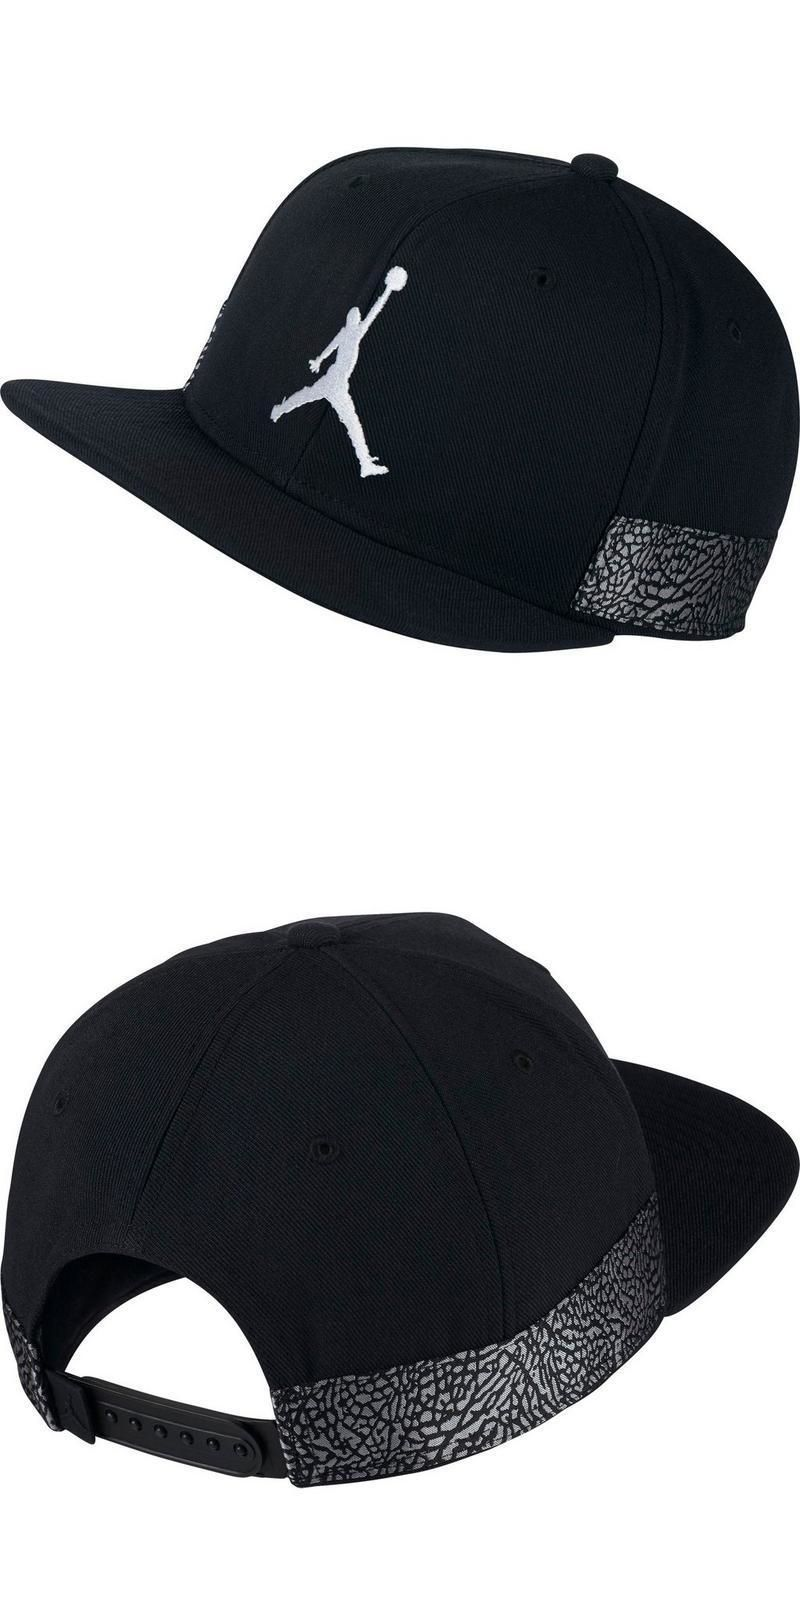 0d789be60f7 Hats 163543  Air Jordan Jumpman Pro Aj3 Black Snapback Hat Flat Bill Retro  Cap New -  BUY IT NOW ONLY   24.95 on  eBay  jordan  jumpman  black   snapback   ...